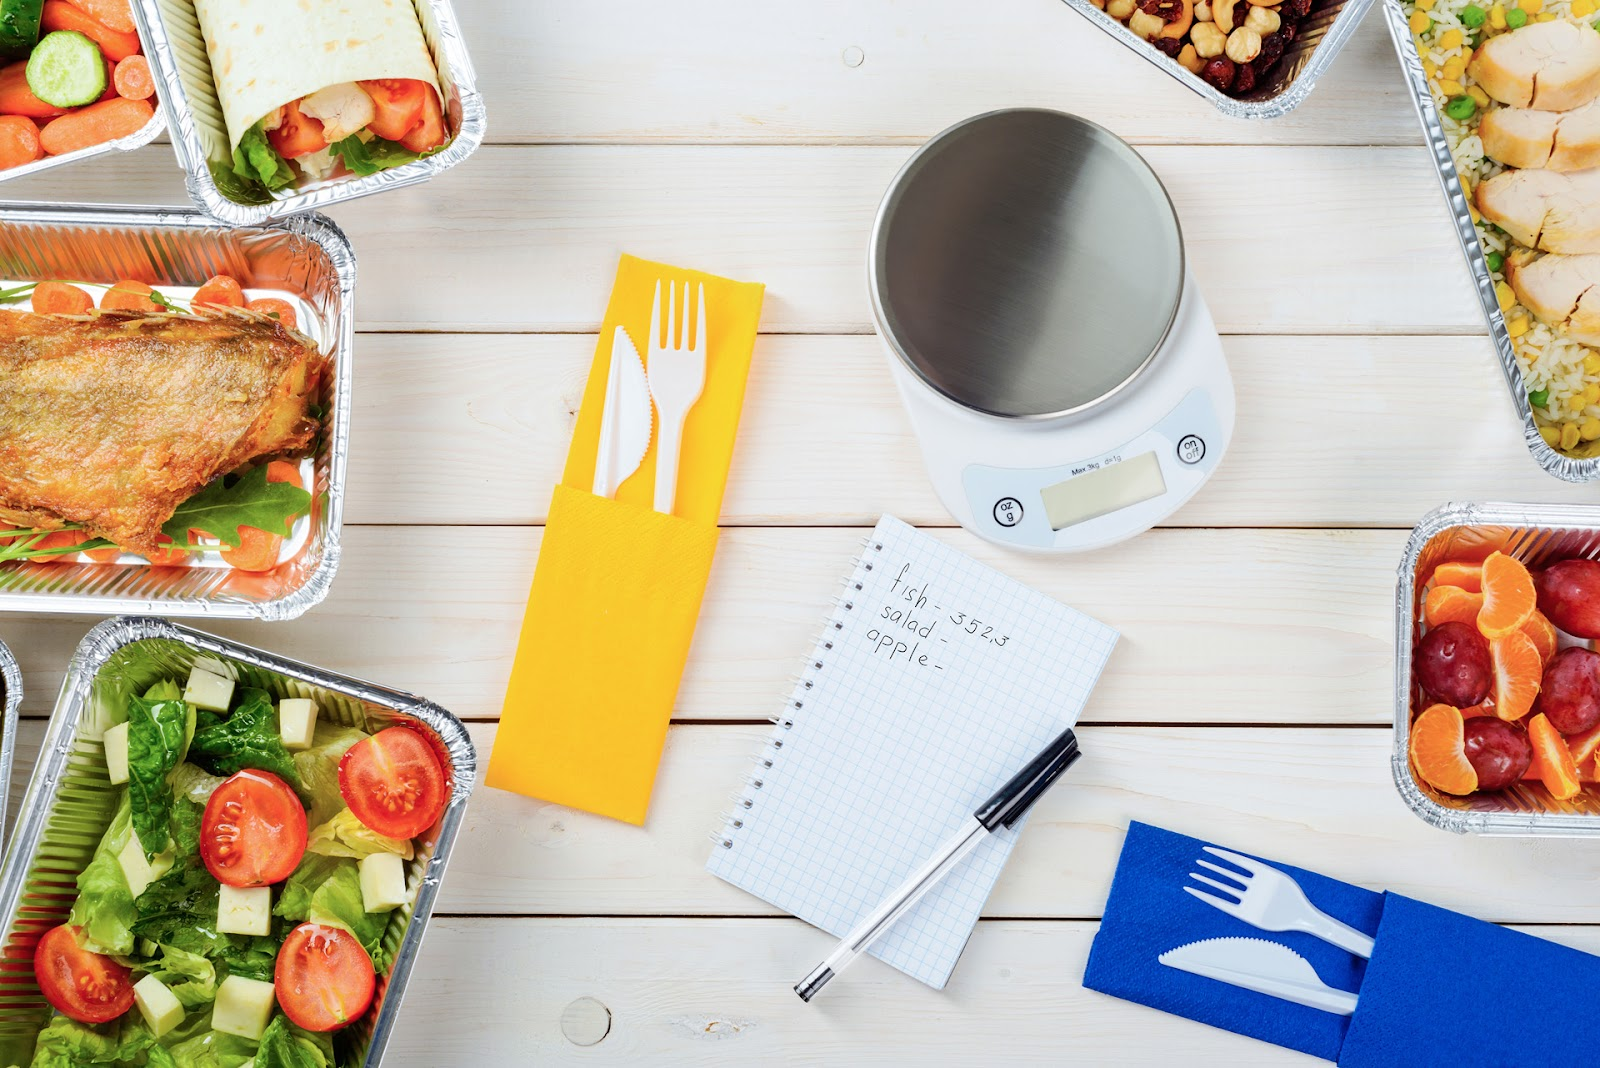 Food and tools for calorie counting